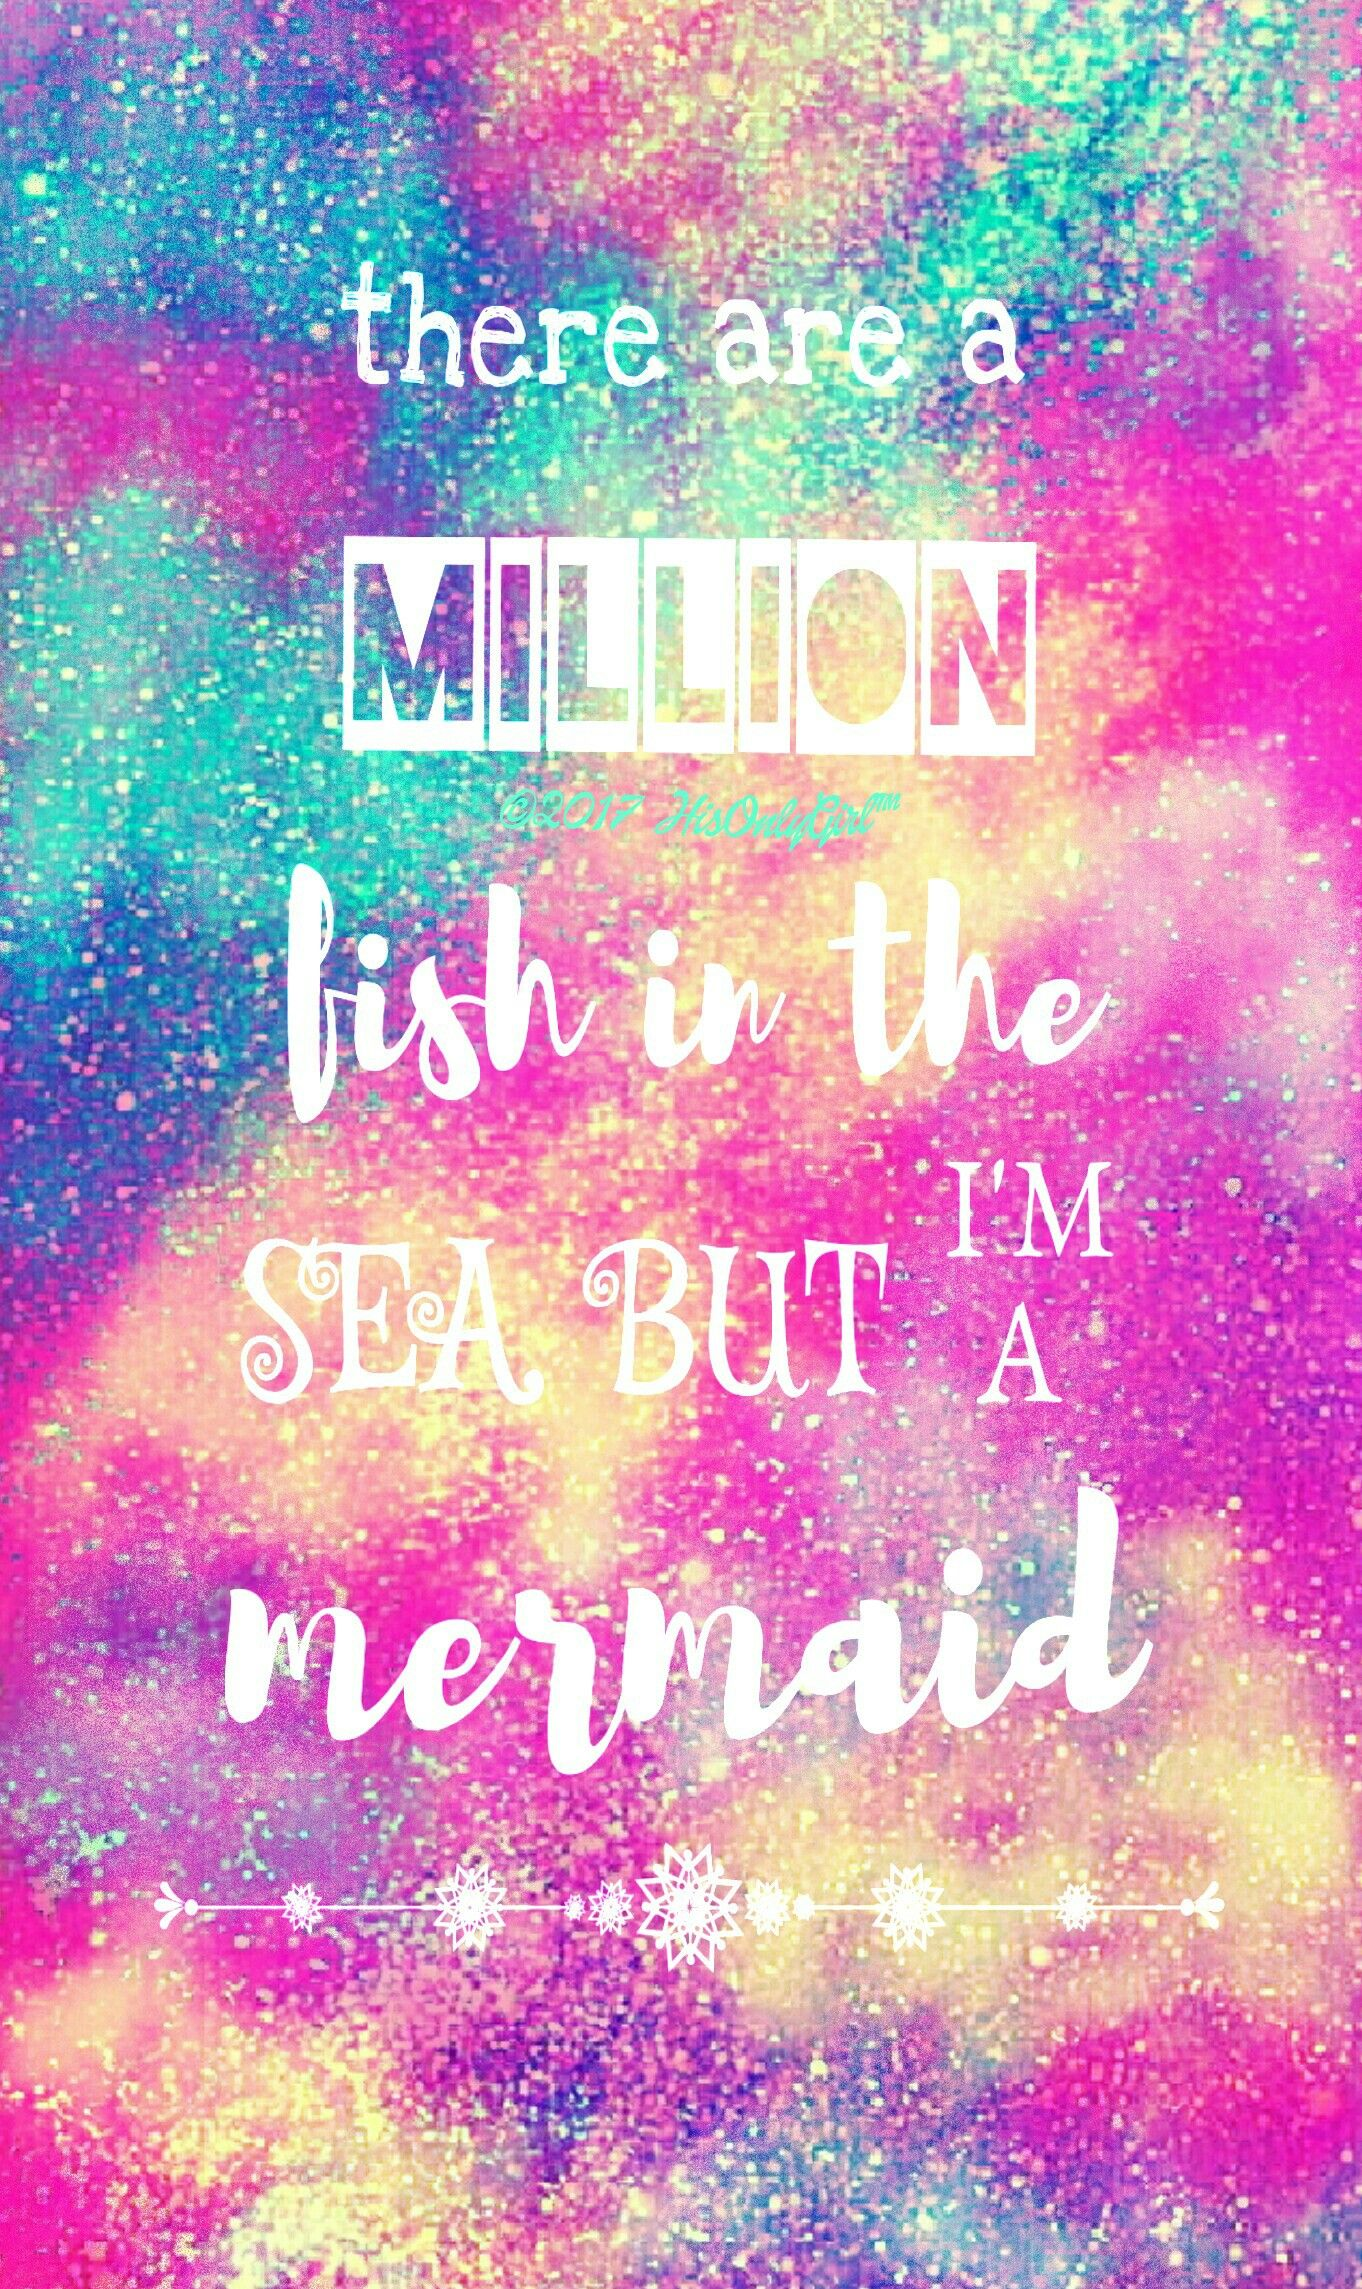 Cute Wallpapers Cocoppa Mermaid Glitter Galaxy Wallpaper I Created For The App